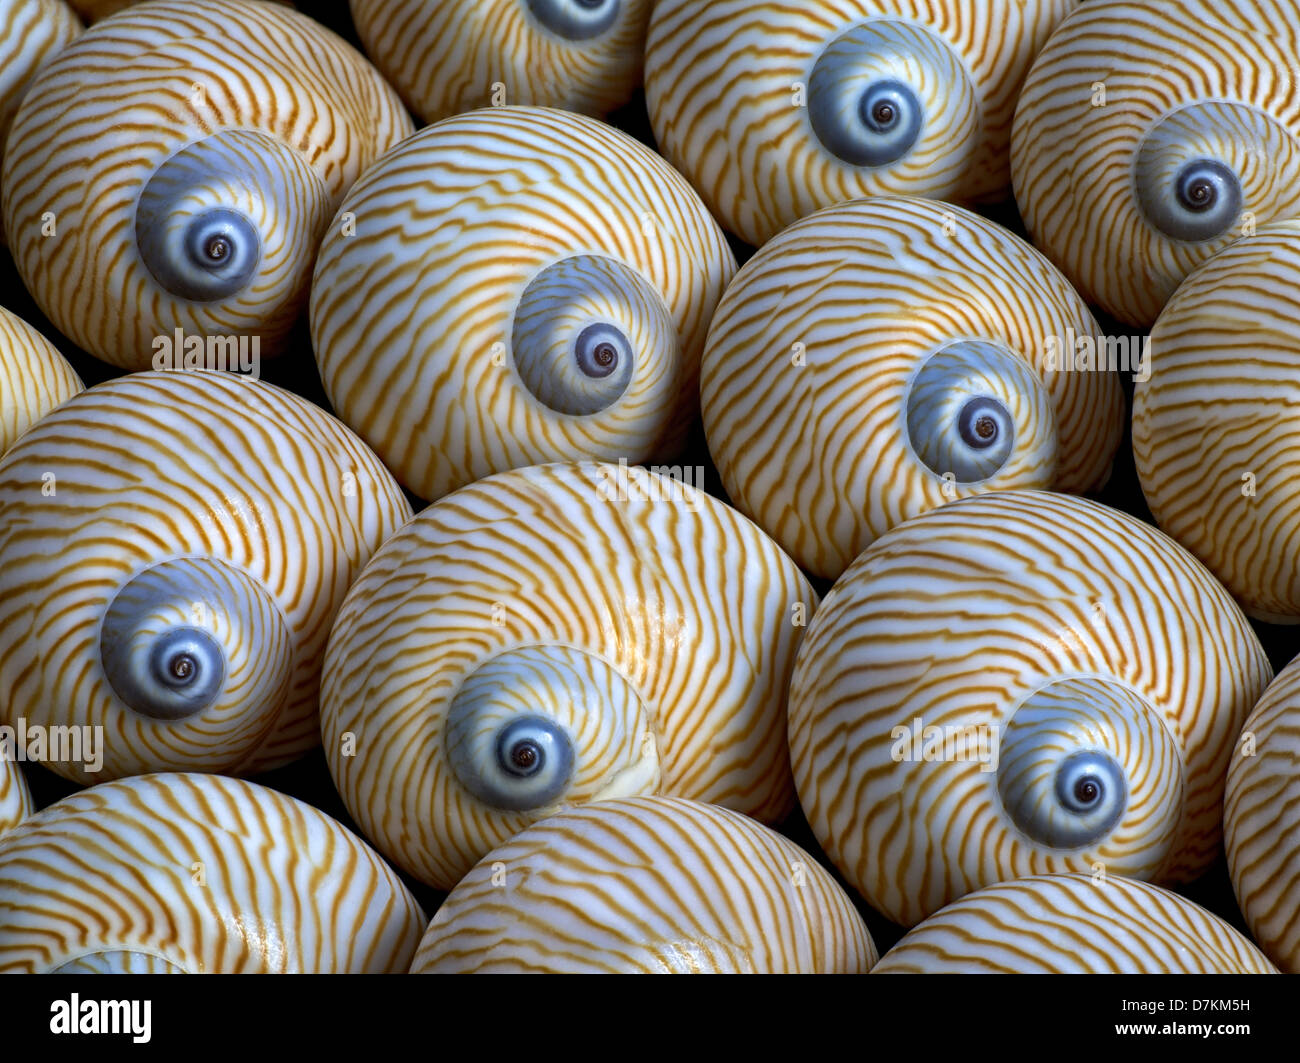 Close up of Striped Moon sea shell. - Stock Image